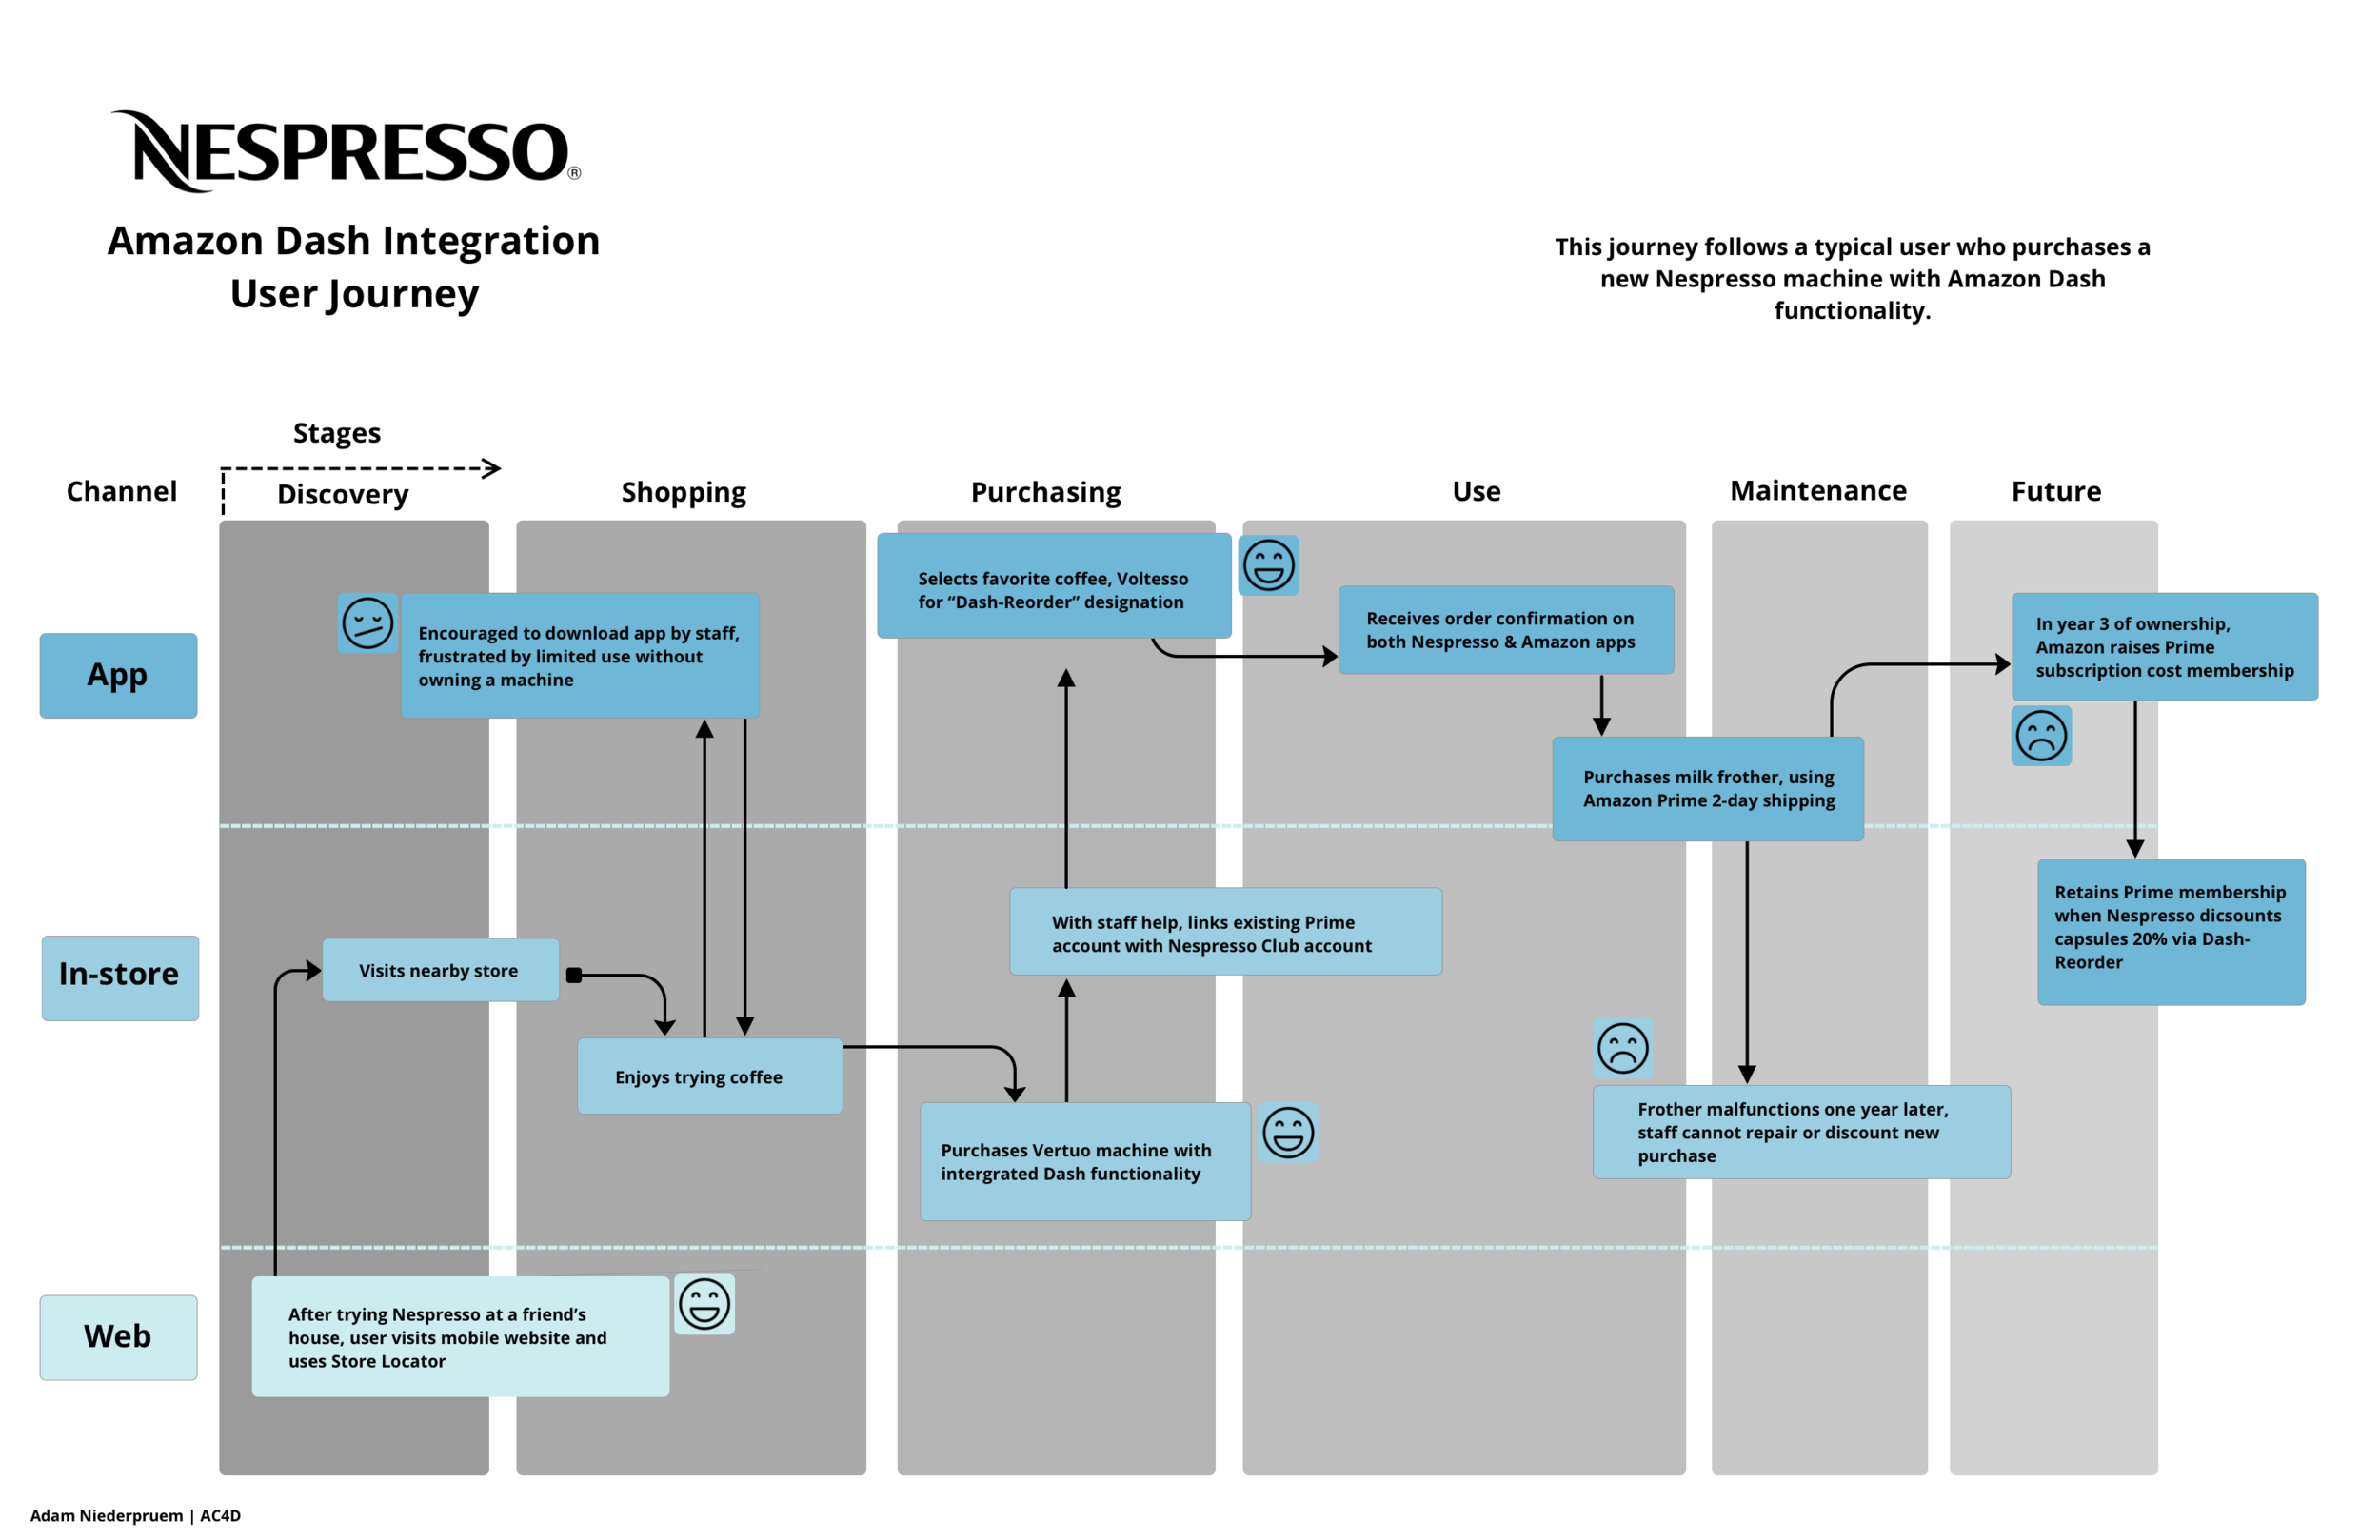 Nespresso Journey Map with Amazon integration